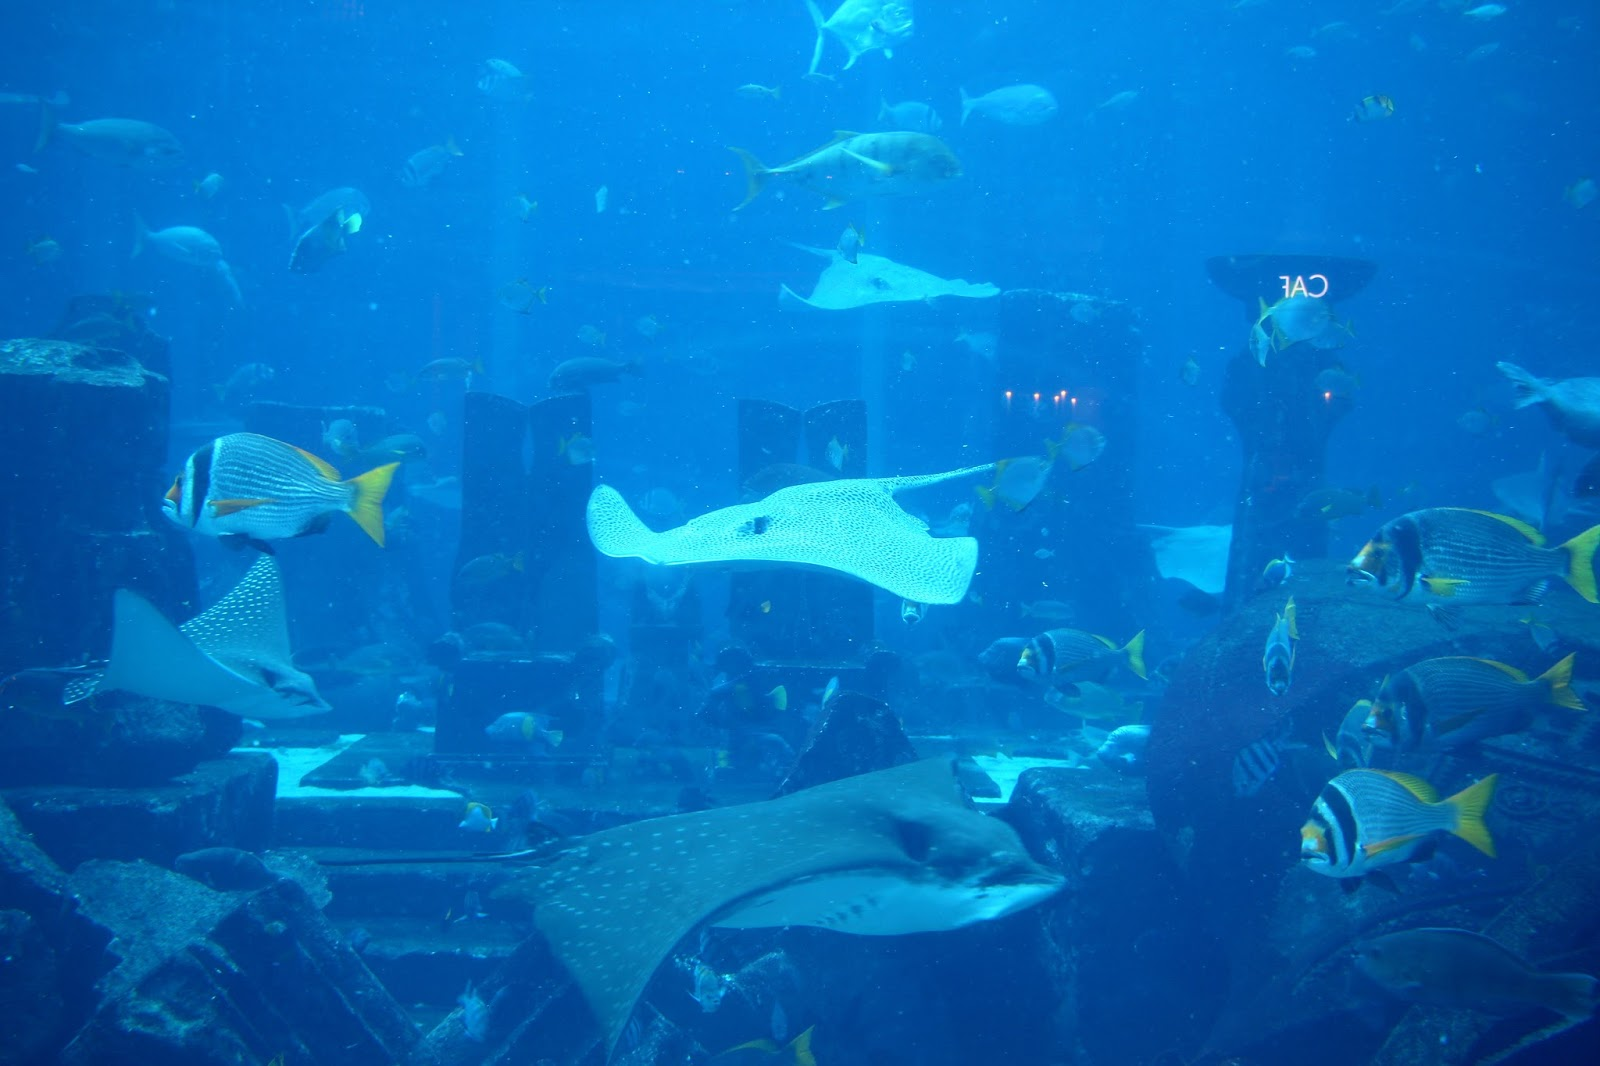 aquarium atlantis the palm